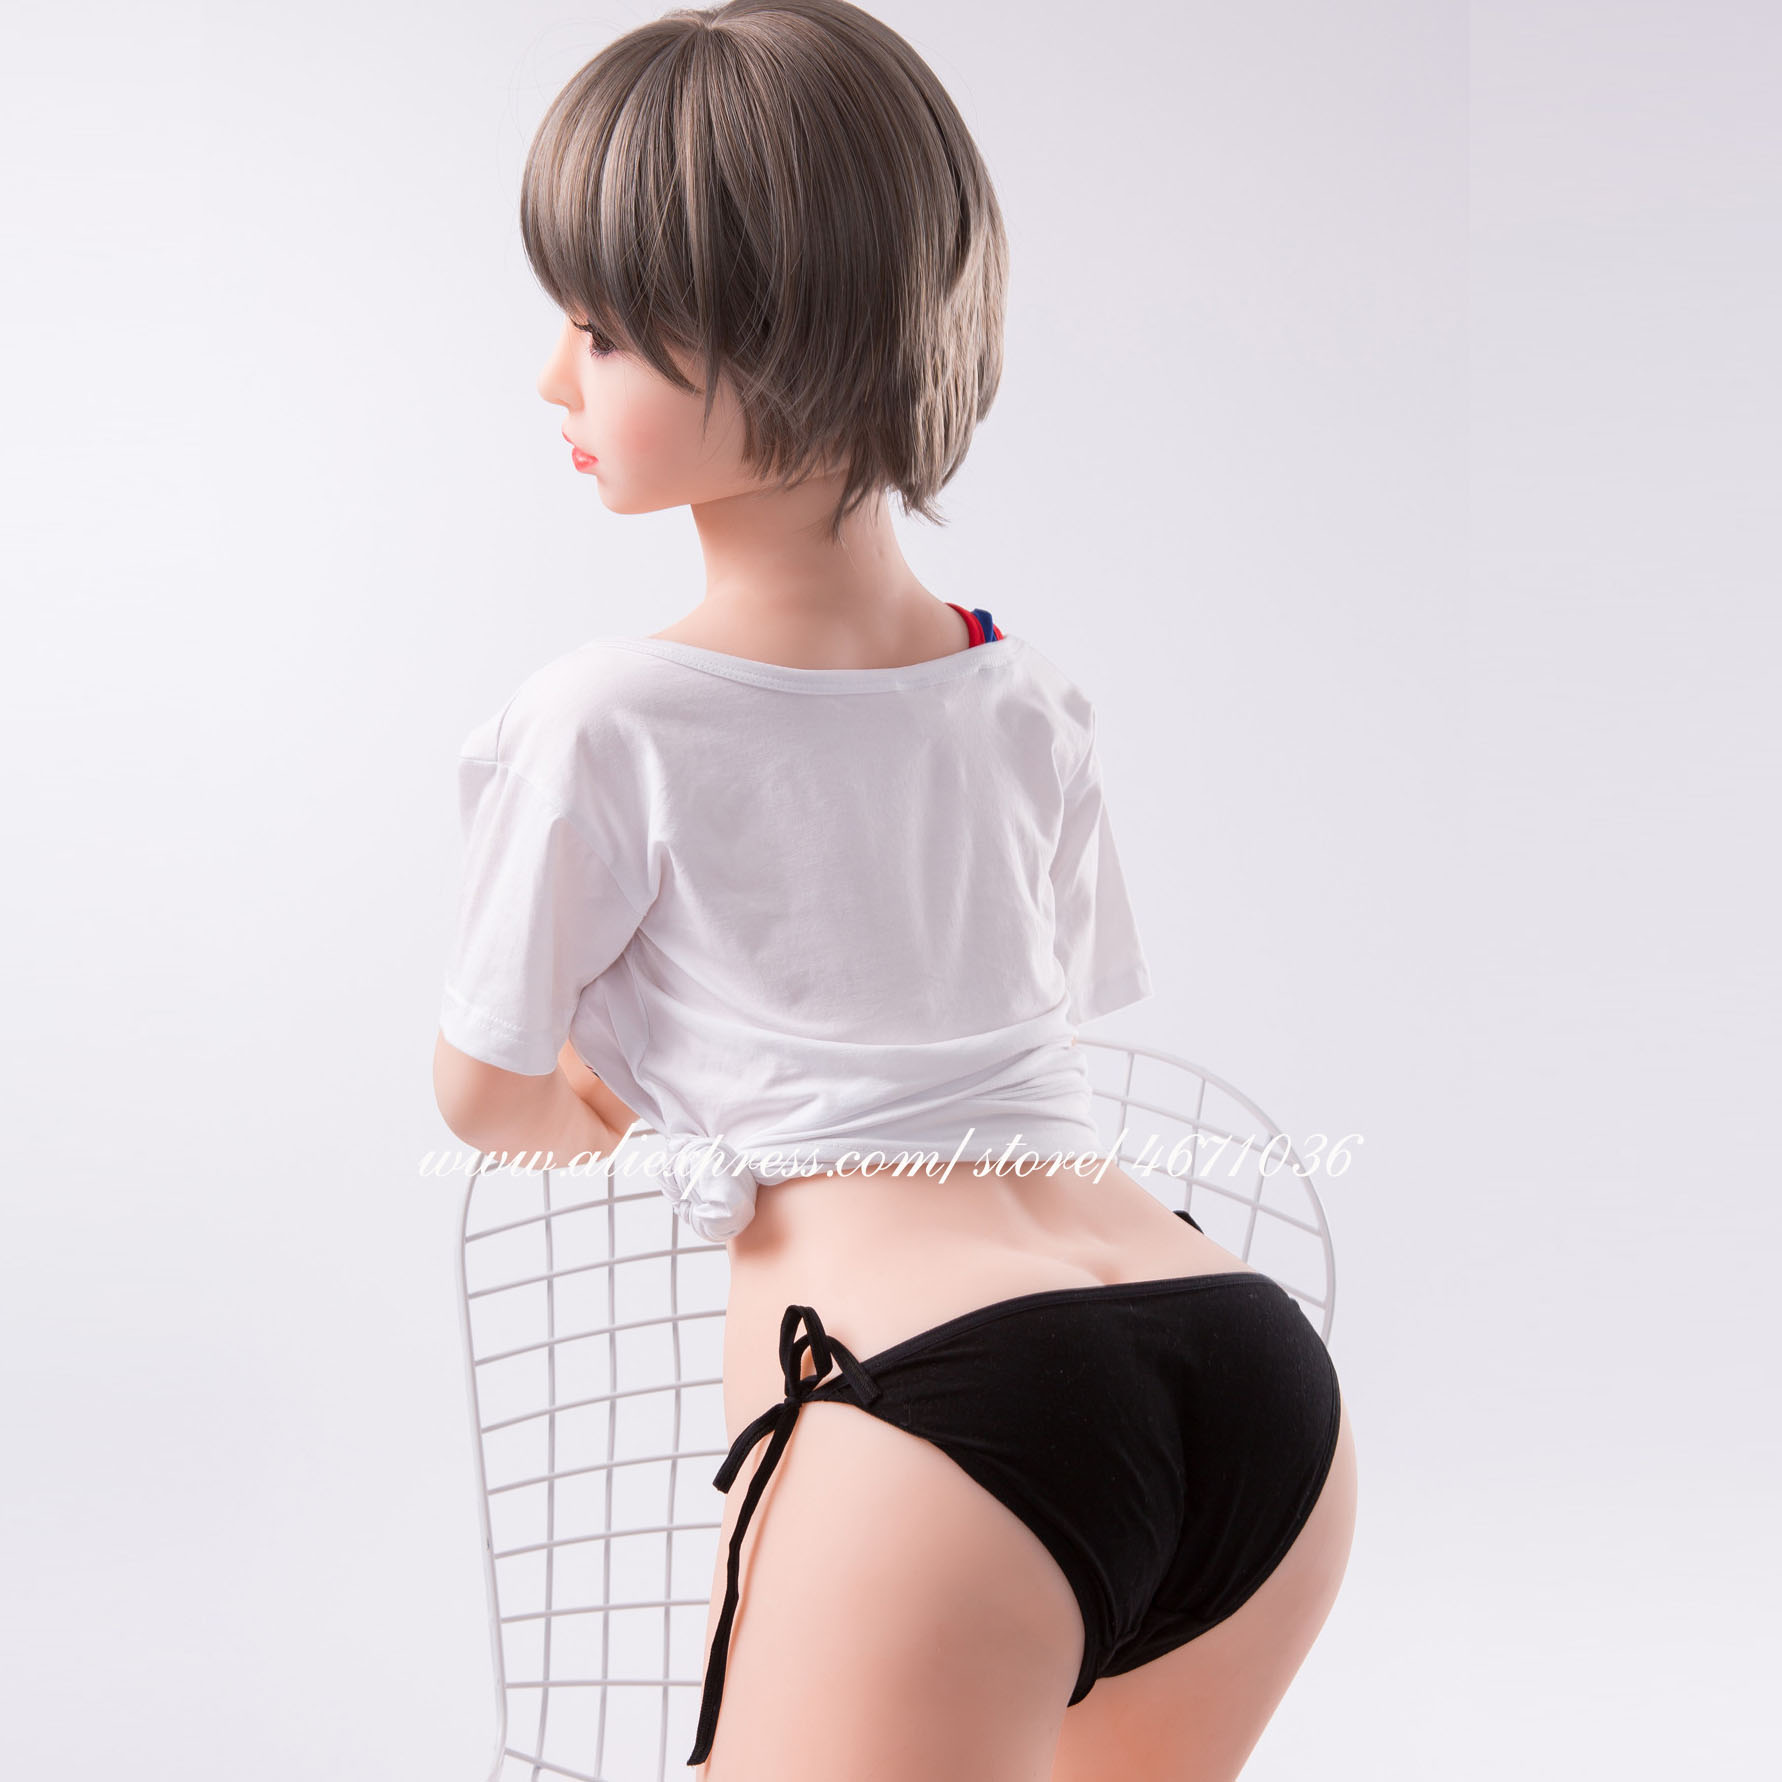 Image 4 - Real Full Silicone Sex Doll 165cm Japanese Sexy Toys for Men Big Breast Big Ass Adult Love Doll Realistic Oral Vagina Anal-in Sex Dolls from Beauty & Health